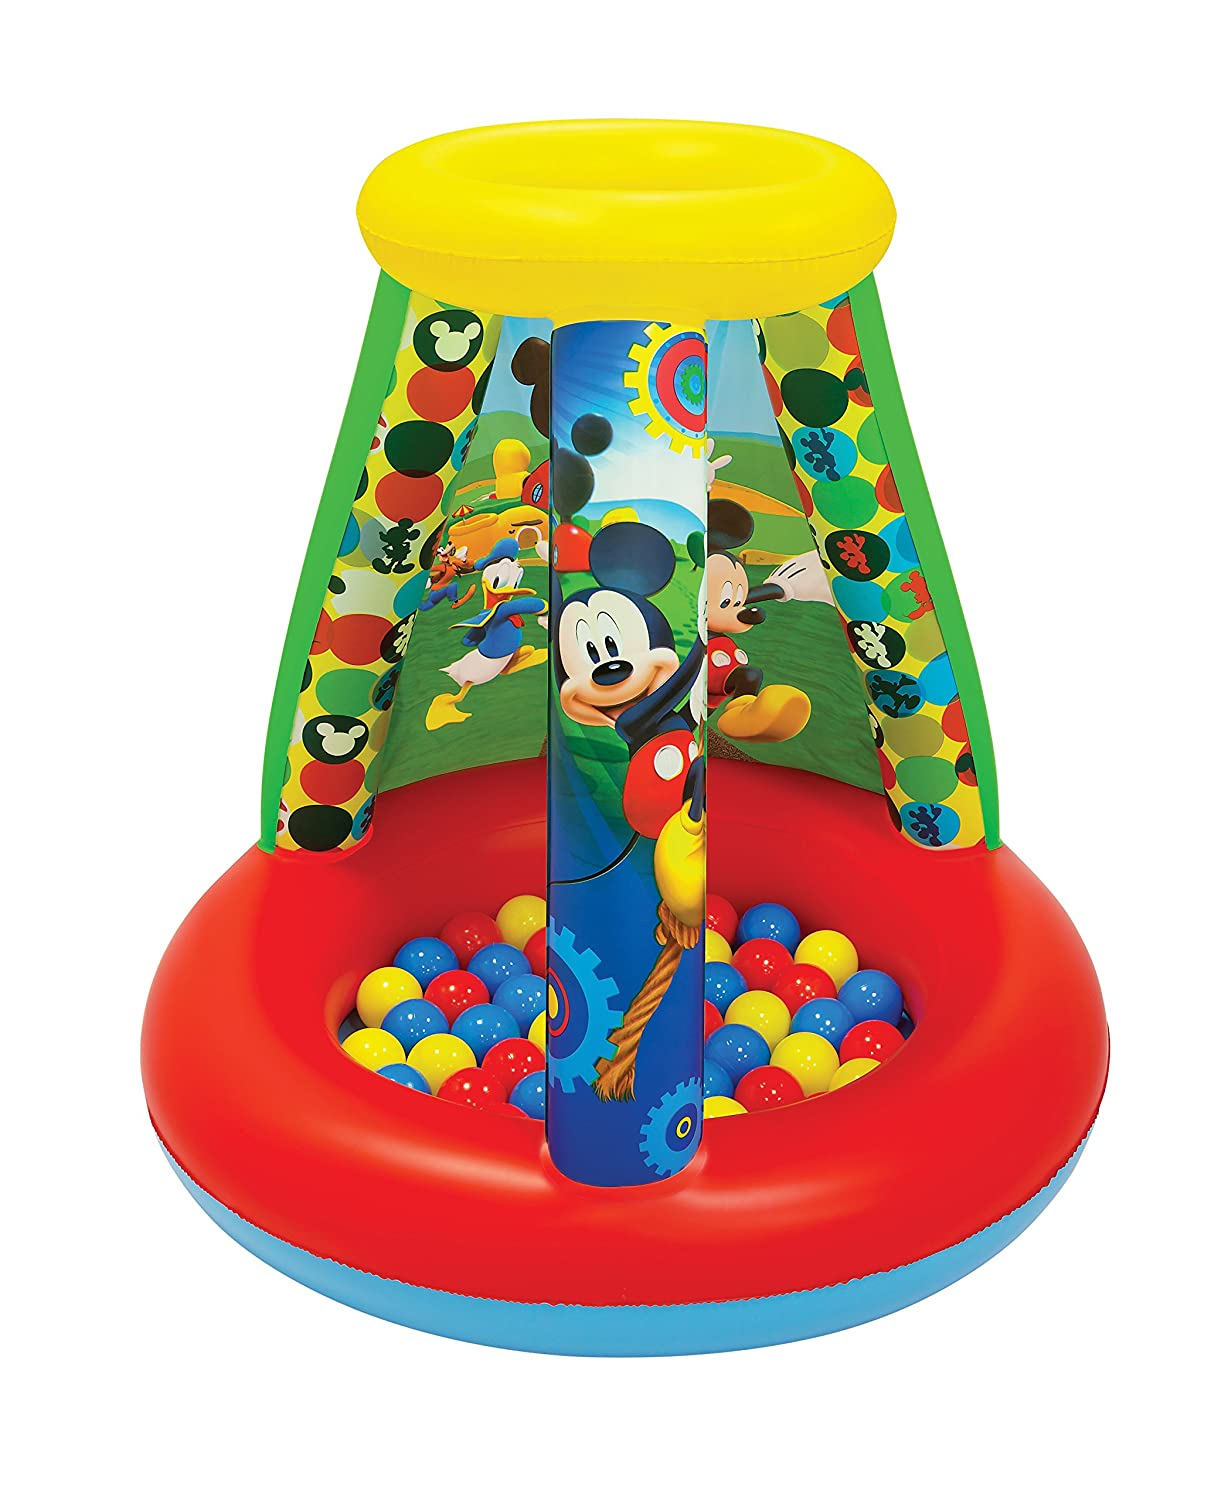 Amazon.com Mickey Mouse Club House Disney Follow Mickey Playland Set with 15 Balls Toys u0026 Games  sc 1 st  Amazon.com : mickey mouse clubhouse pop up tent - memphite.com